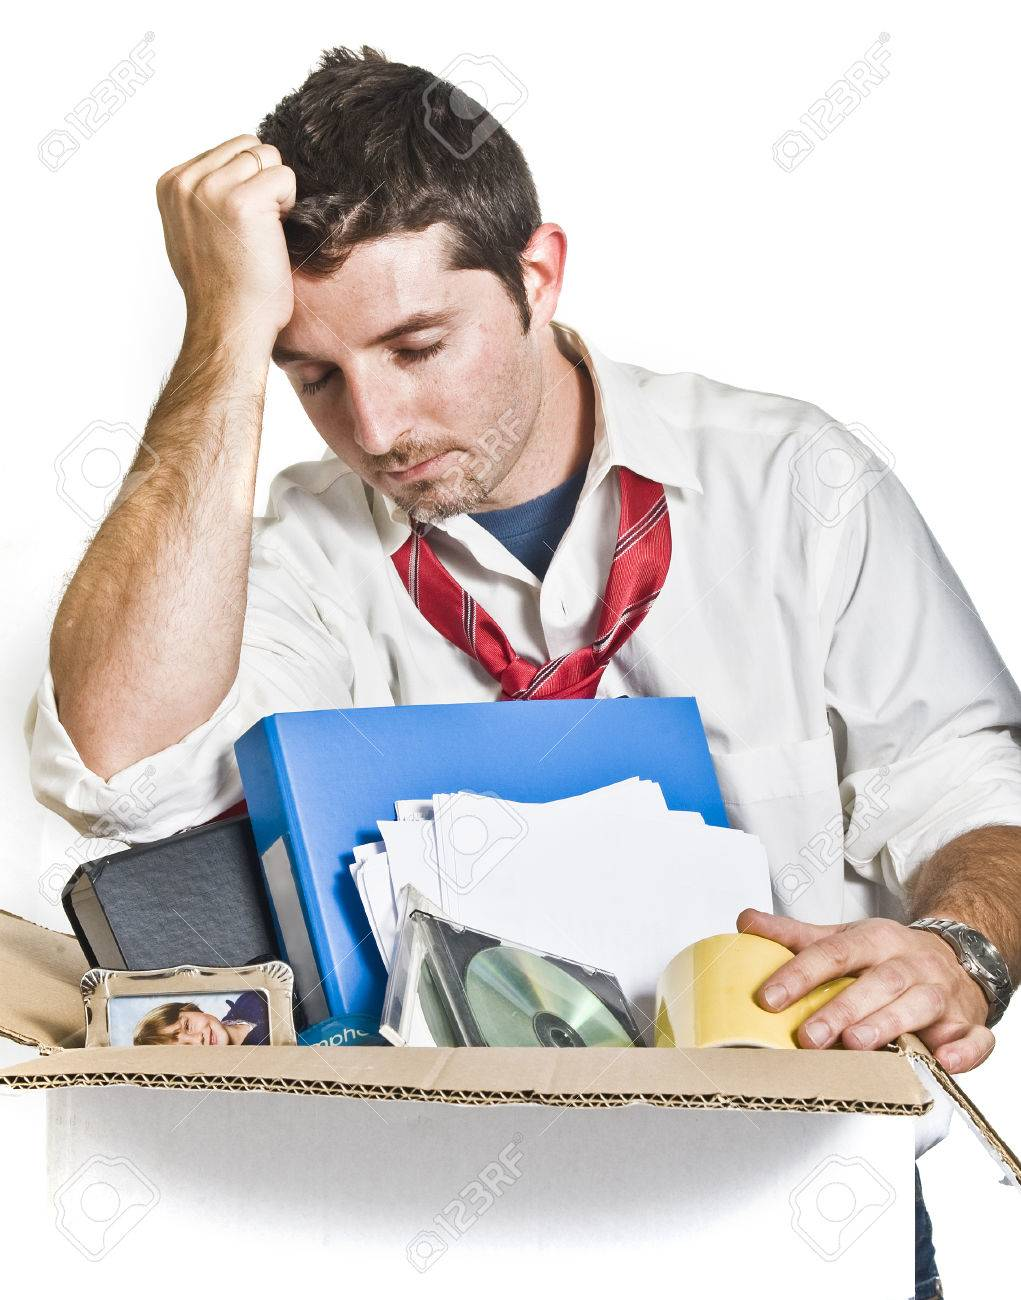 desperate man cardboard box fired from job stock photo desperate man cardboard box fired from job stock photo 22710242